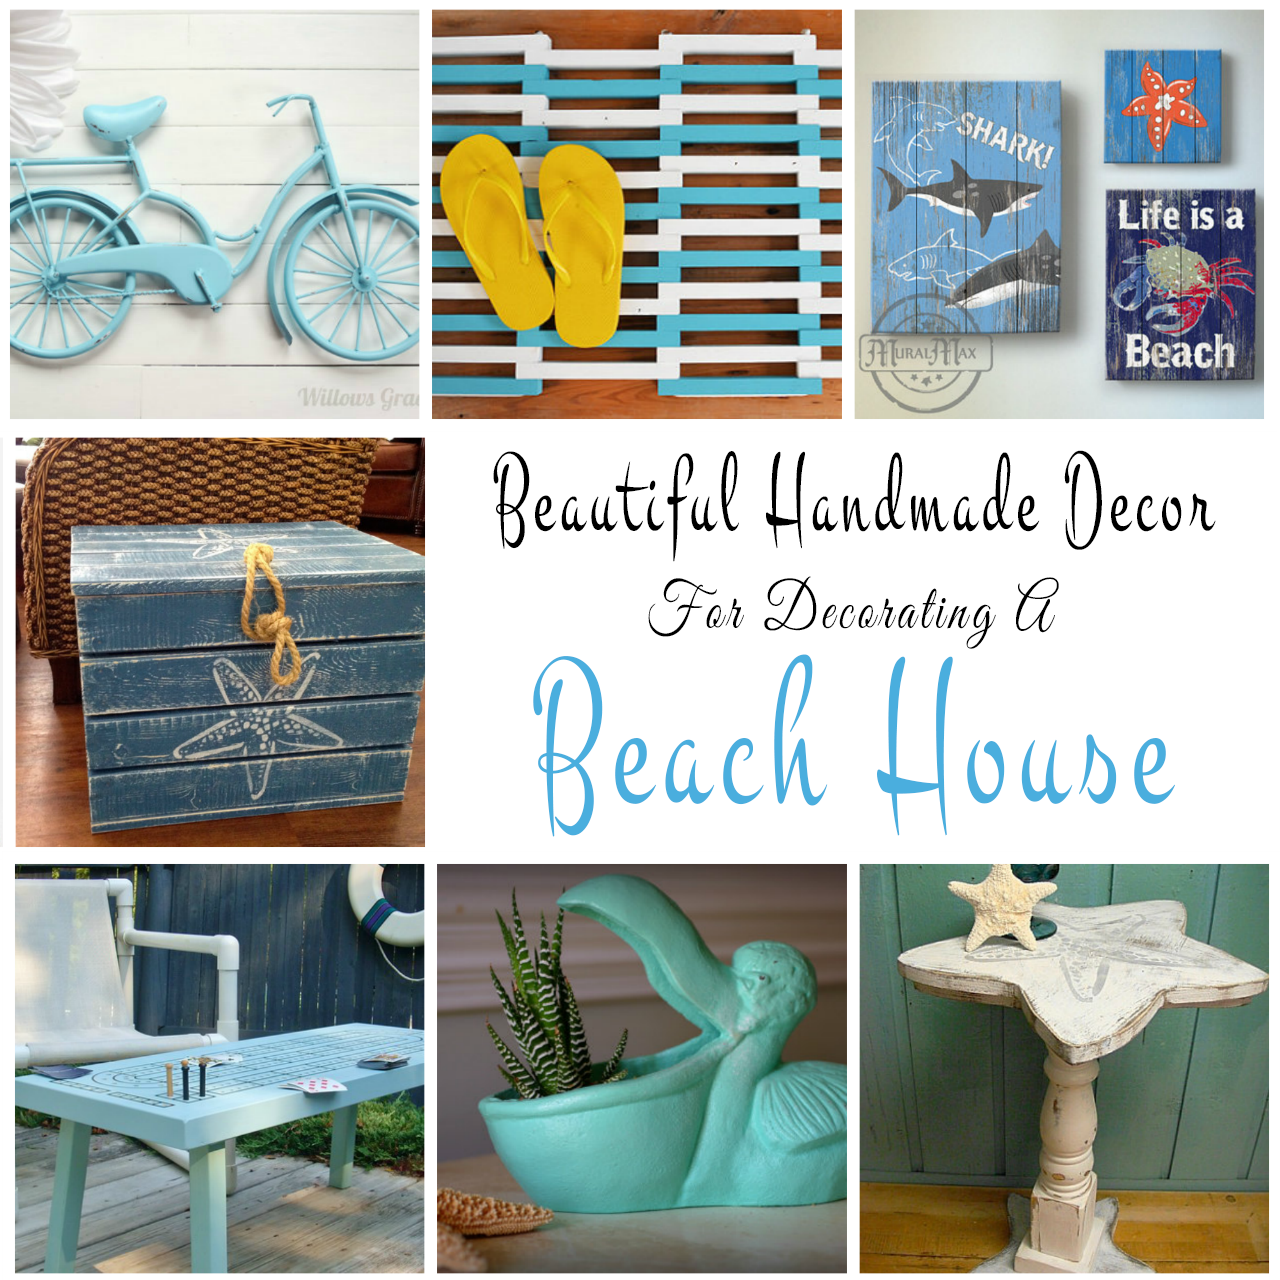 25 Wall Decoration Ideas For Your Home: 25 Handmade Decor Ideas For Decorating A Beach House